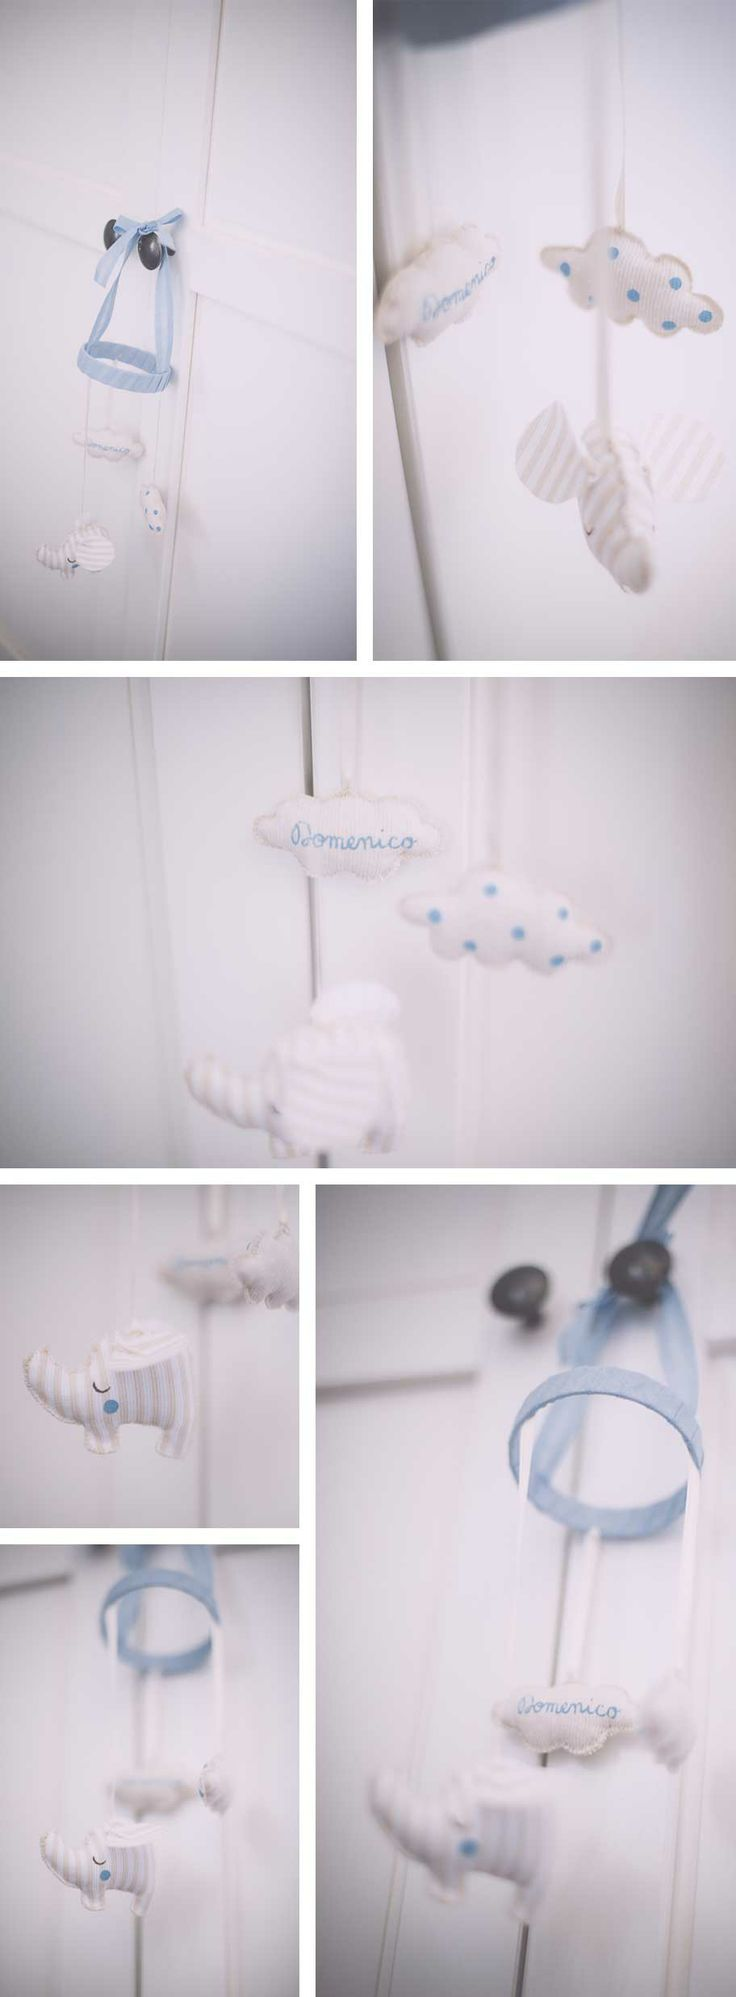 AnDphotography - handmade A cute idea for your baby boy nursery!